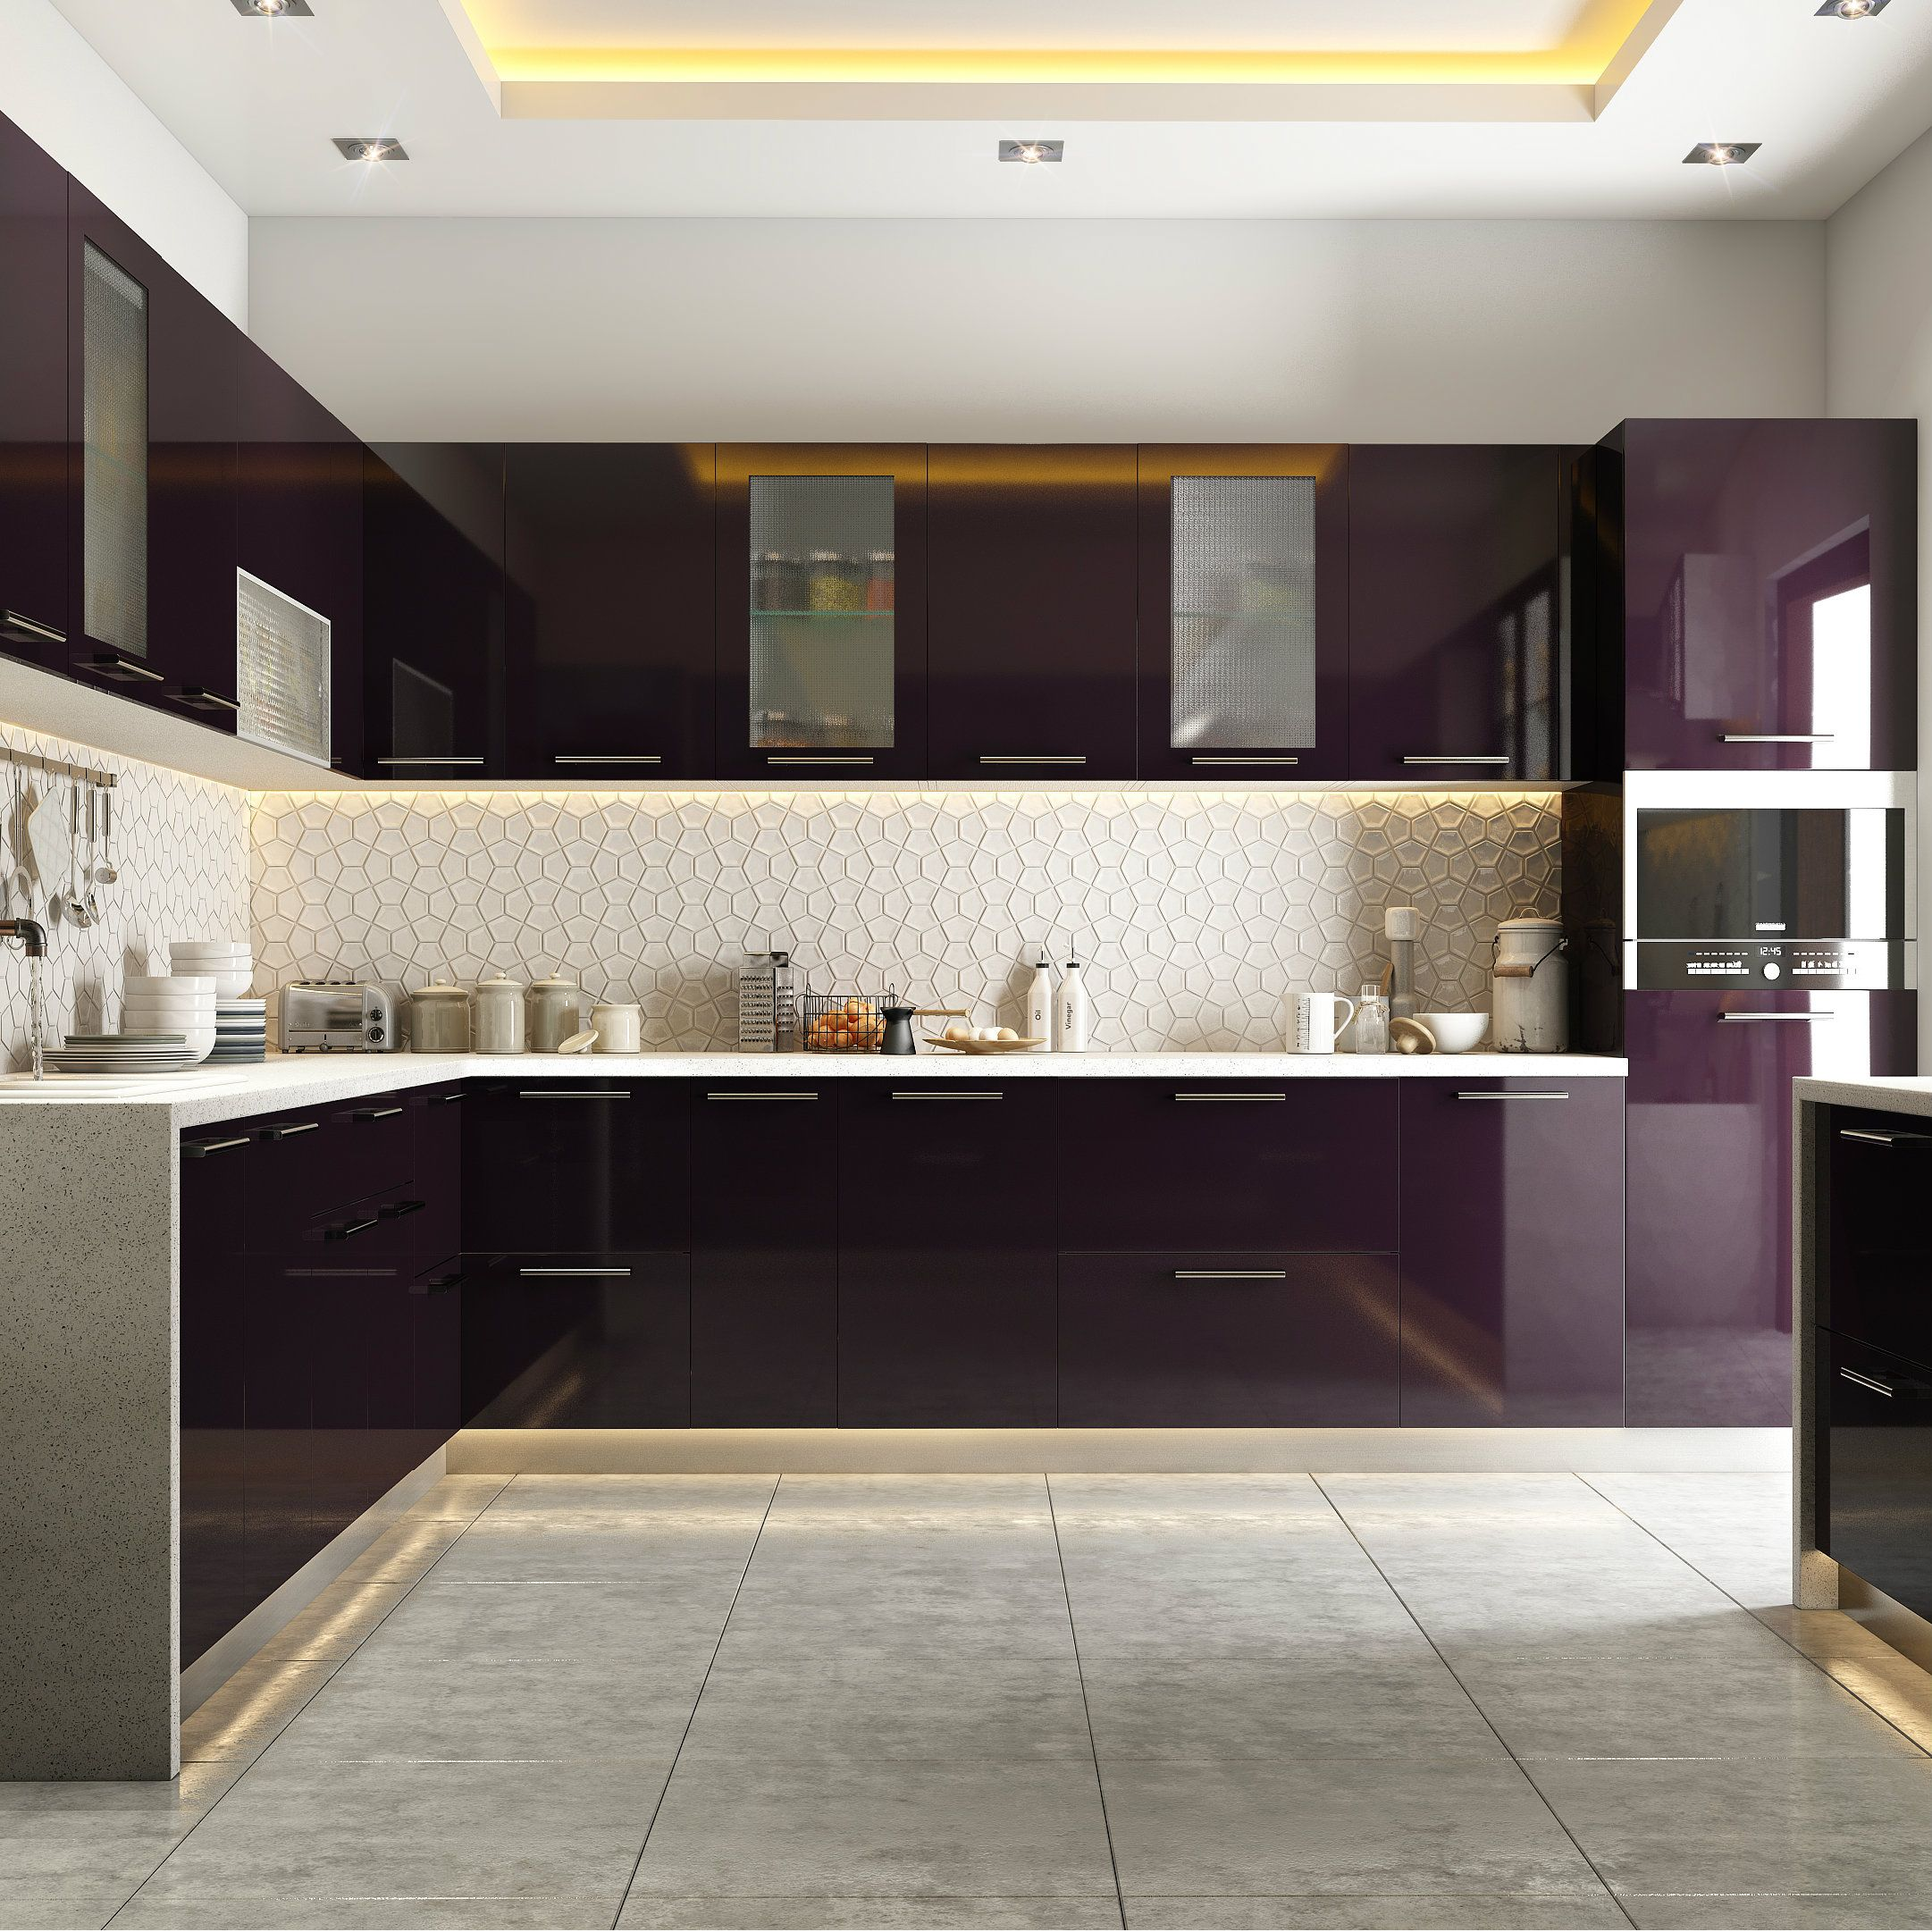 New Home Designs Latest Modern Home Kitchen Cabinet: Modular Kitchen Styled In Burgundy Hues